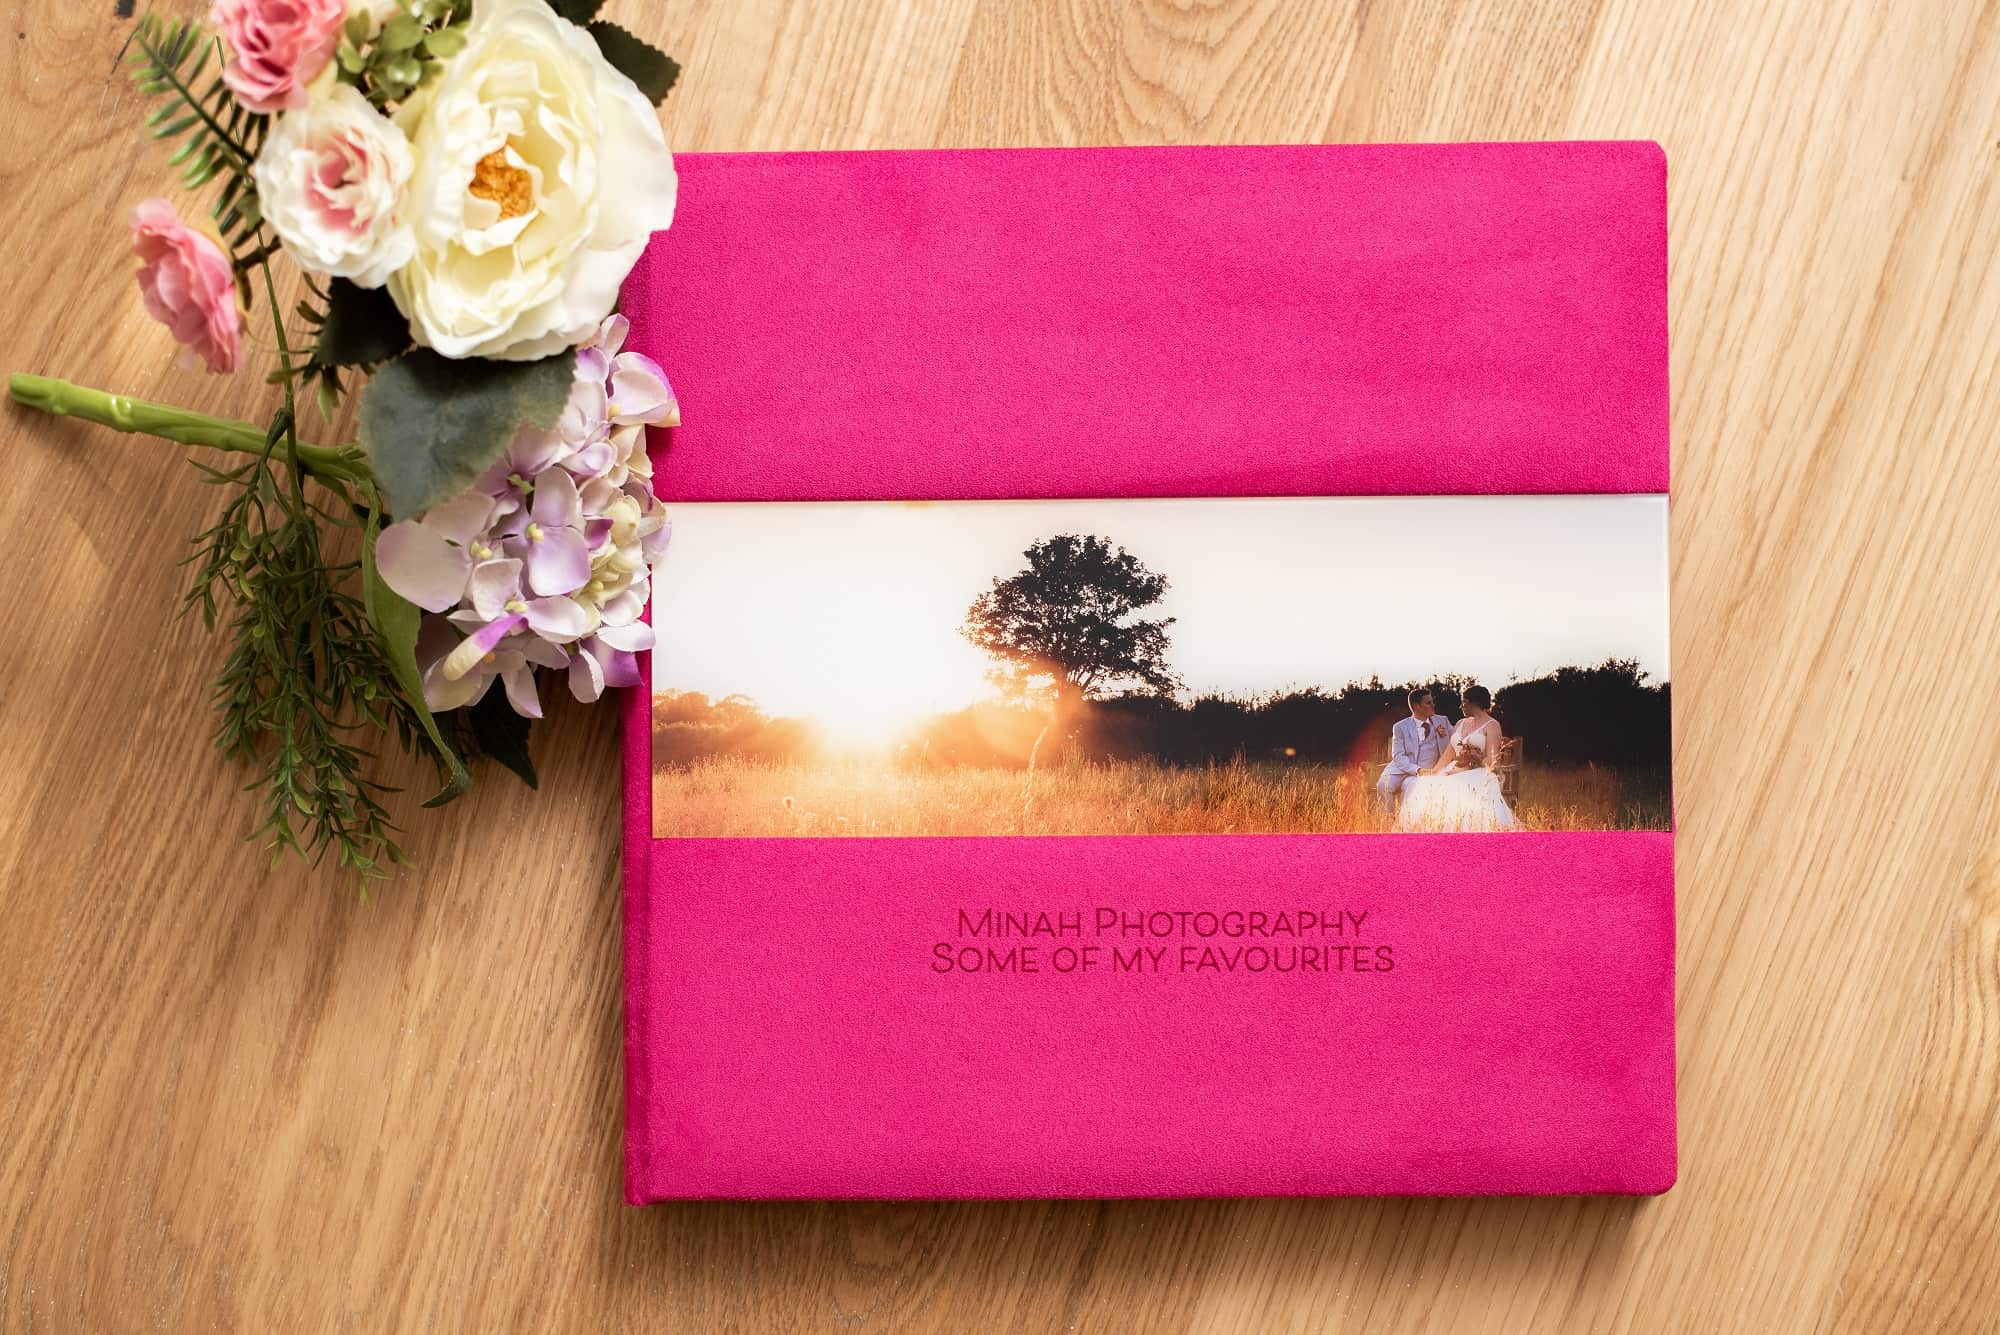 Wedding albums products, bespoke and made to your own design. Great for a gift. cream suede album with matching box